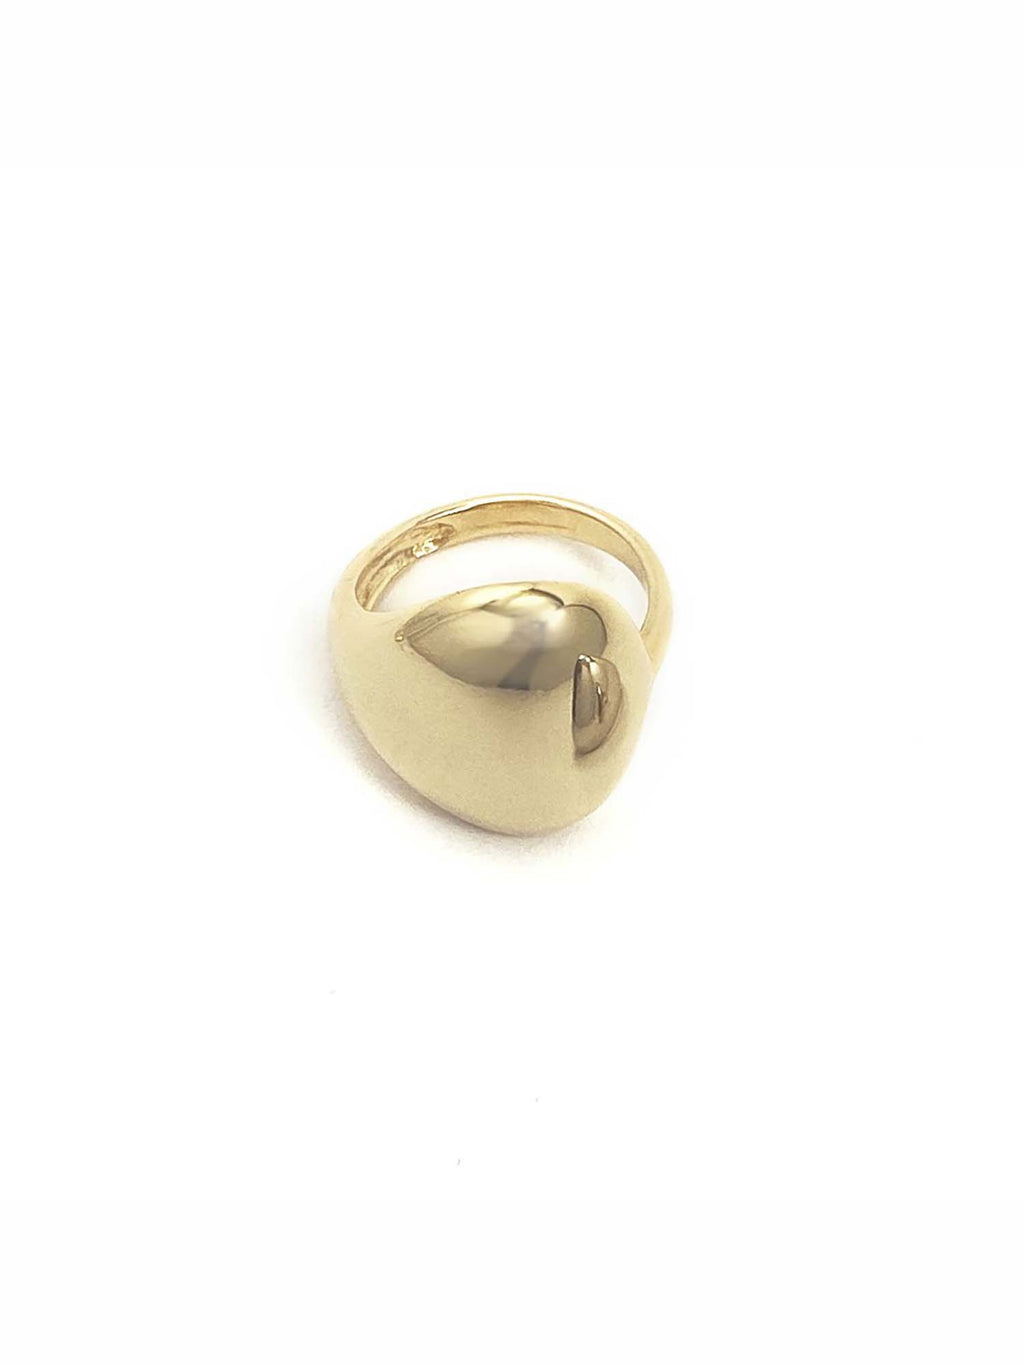 Biko Slowdance Ring